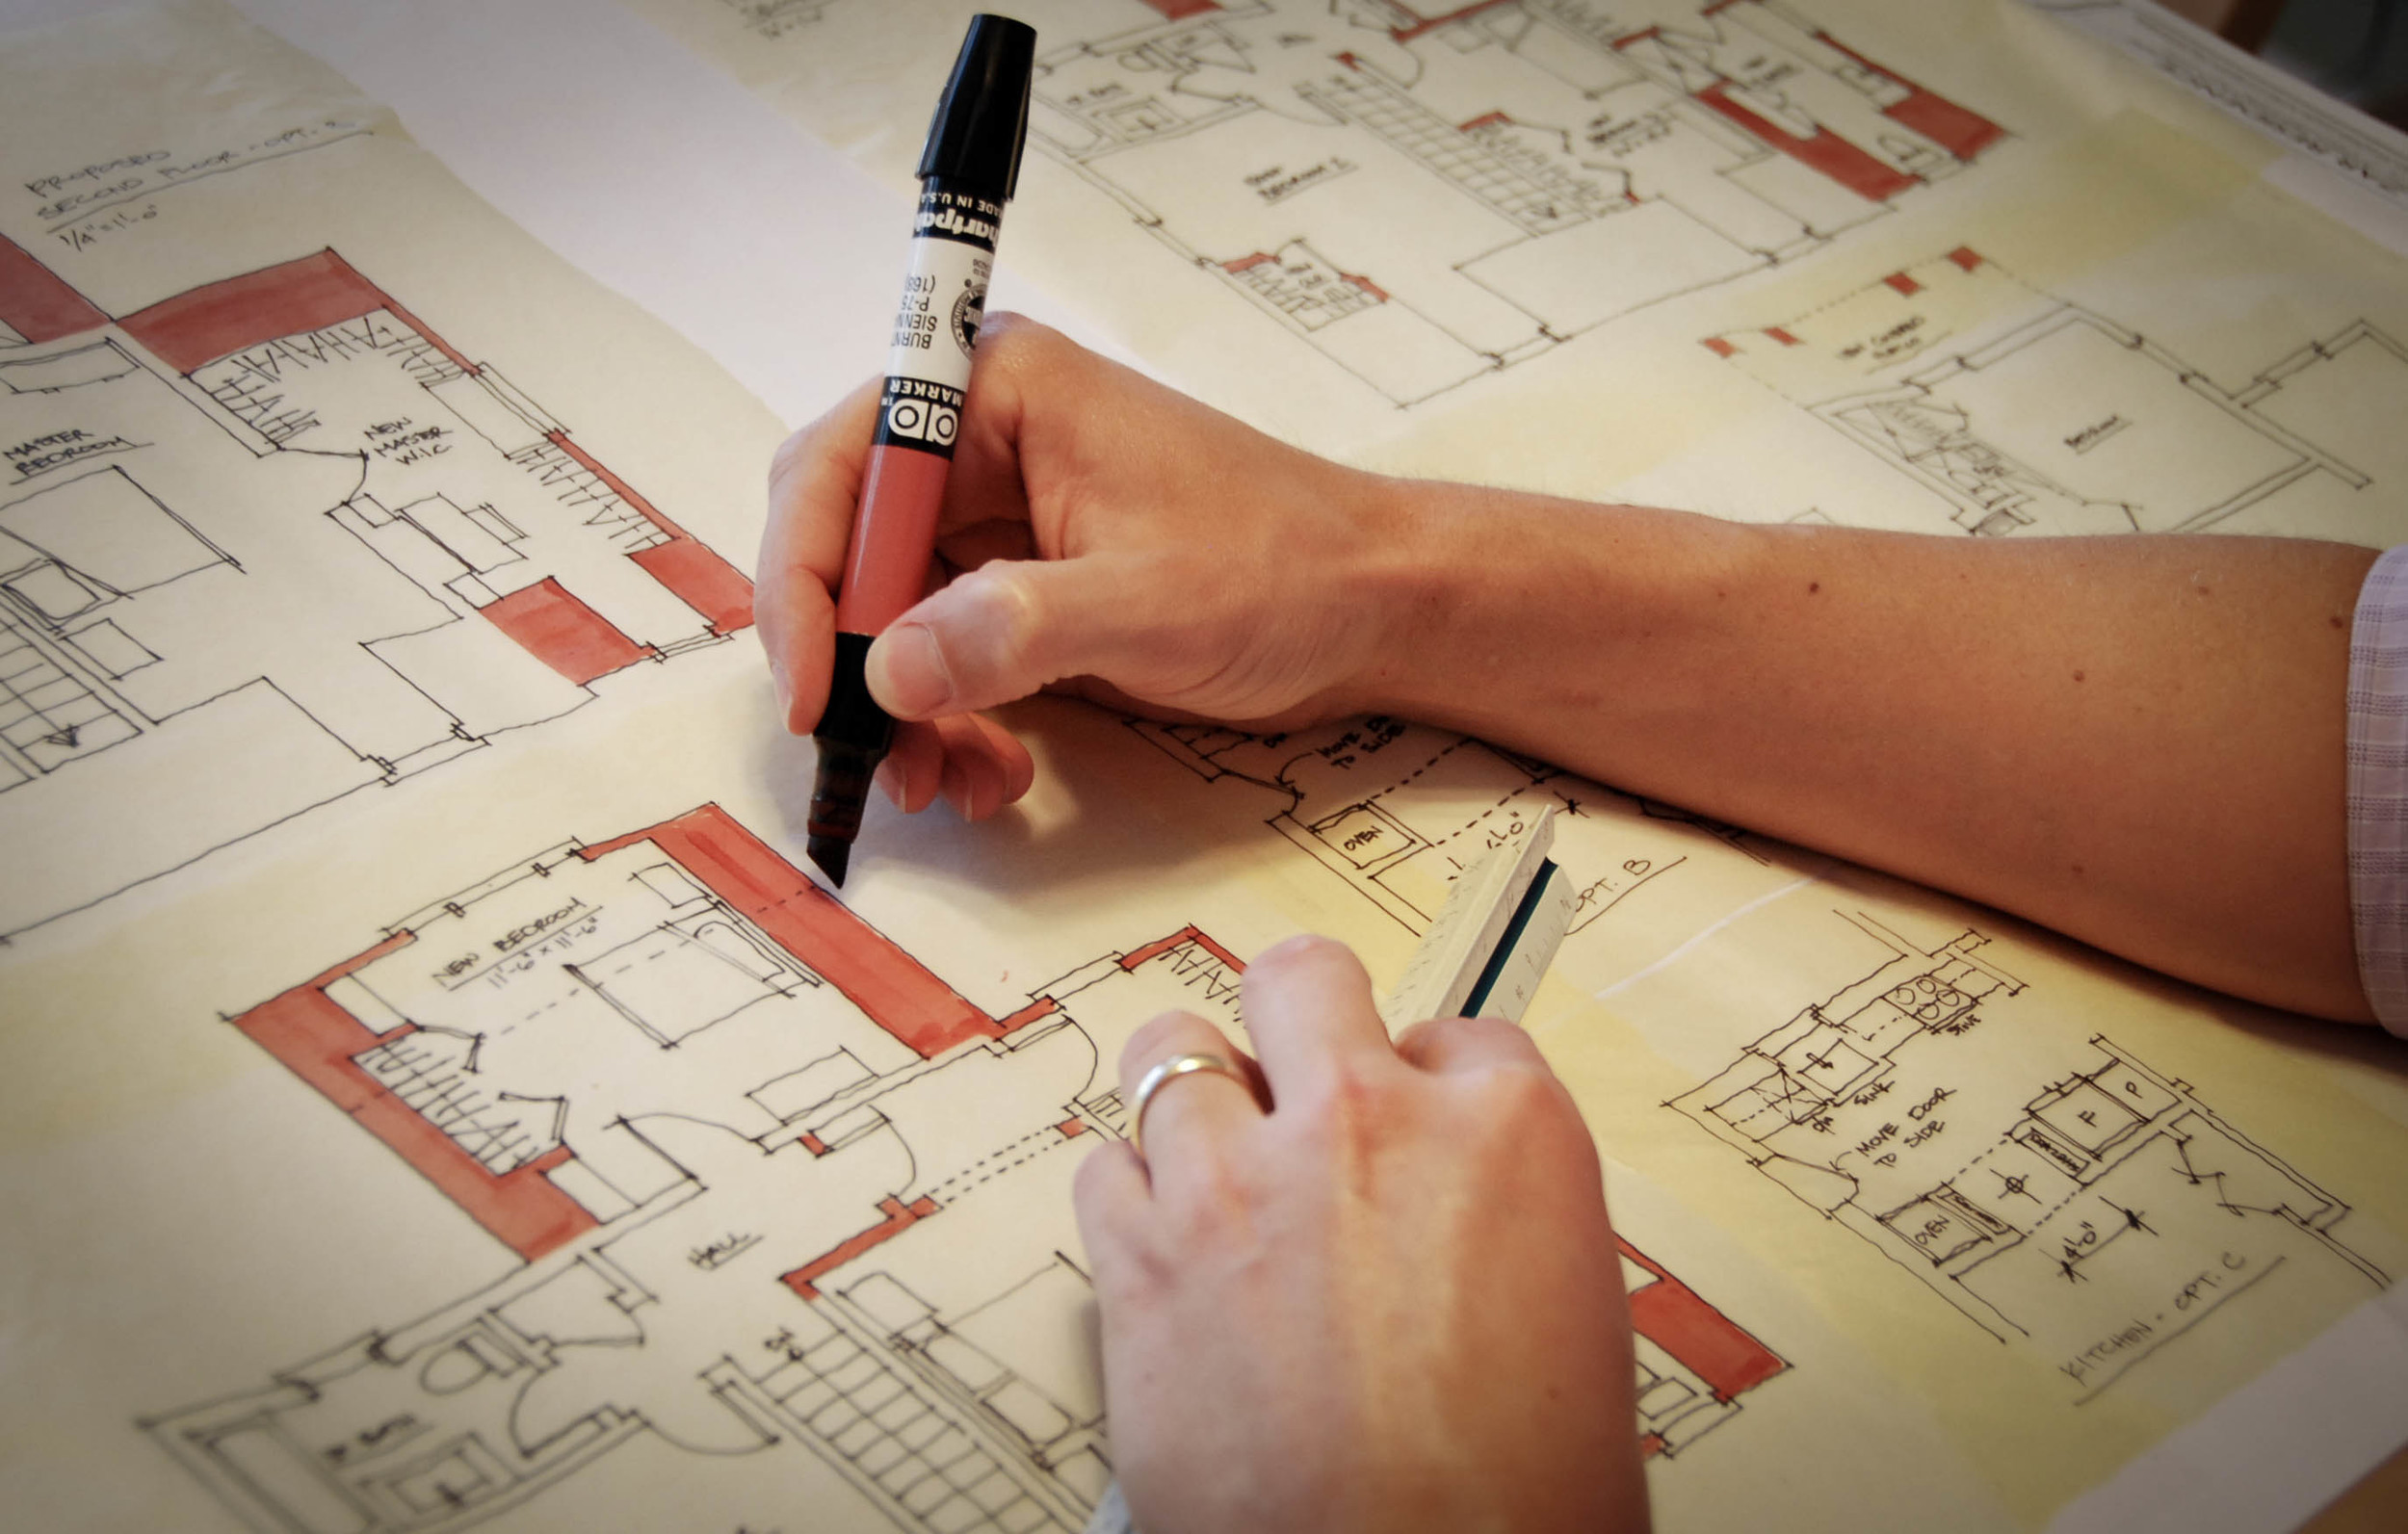 Schematic Design    Saul Architects will provide a series of sketches, drawings, models, etc. to describe the general design scheme. We will meet with the client throughout this process as necessary to review the drawings and incorporate client feedback.